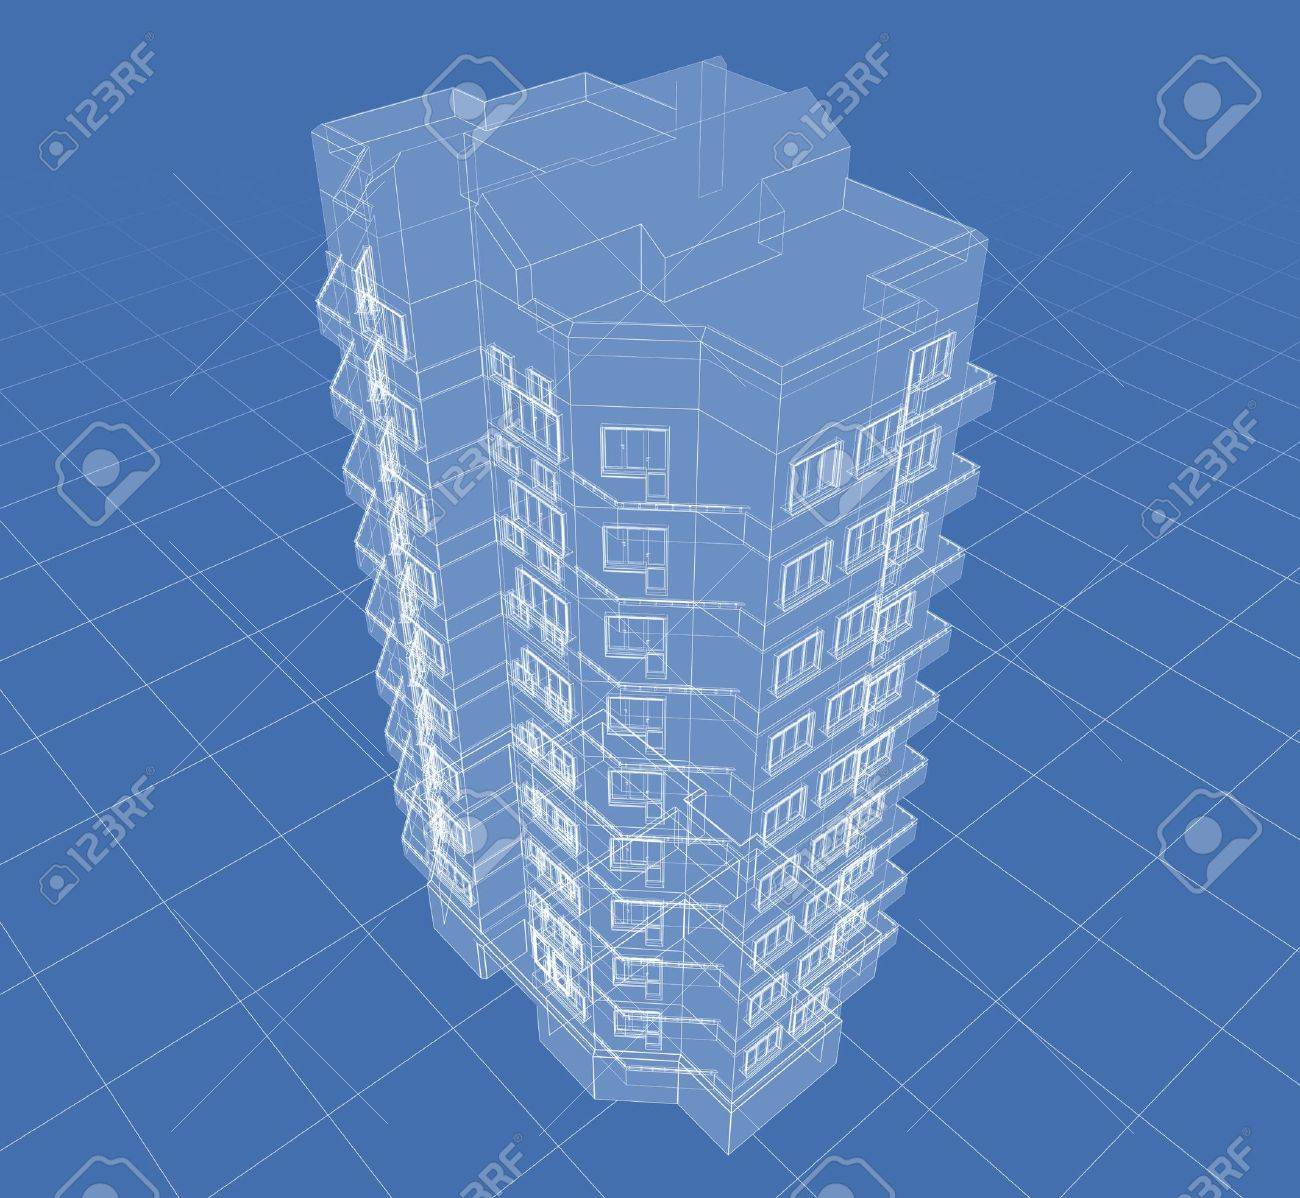 Abstract architectural 3D drawing of apartment house on blue. Stock Photo - 6421573